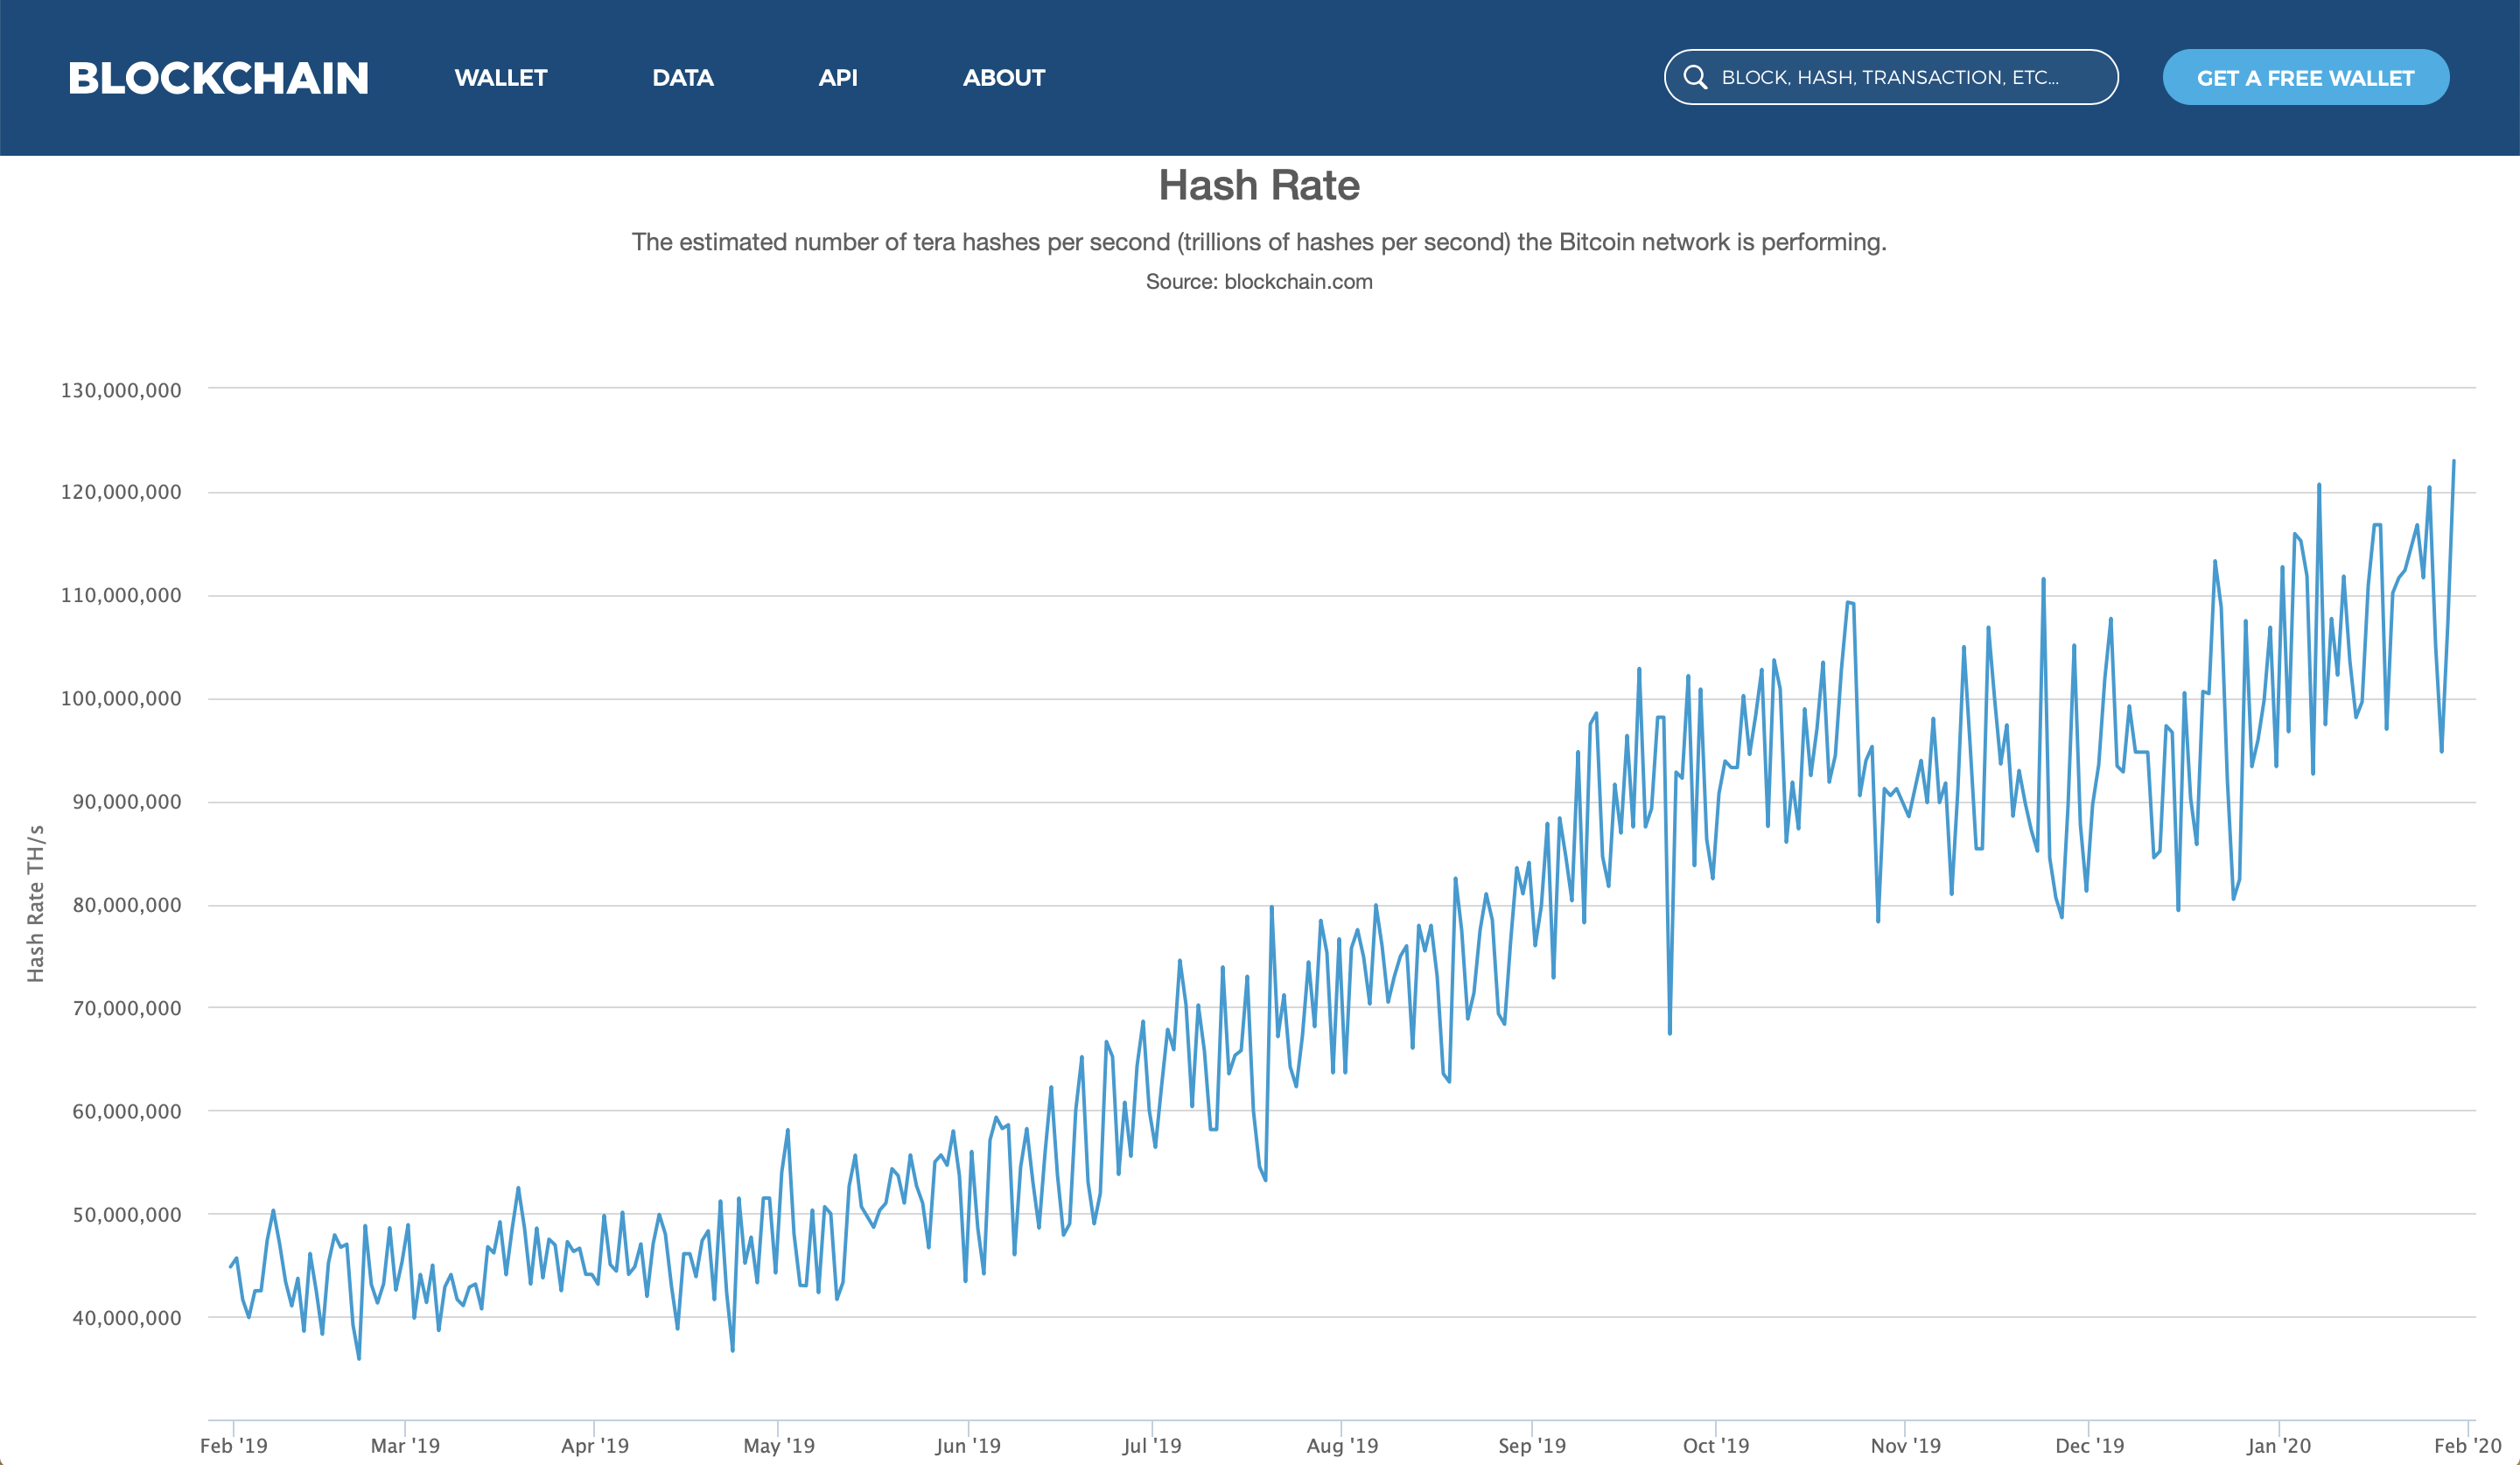 Hash Rate